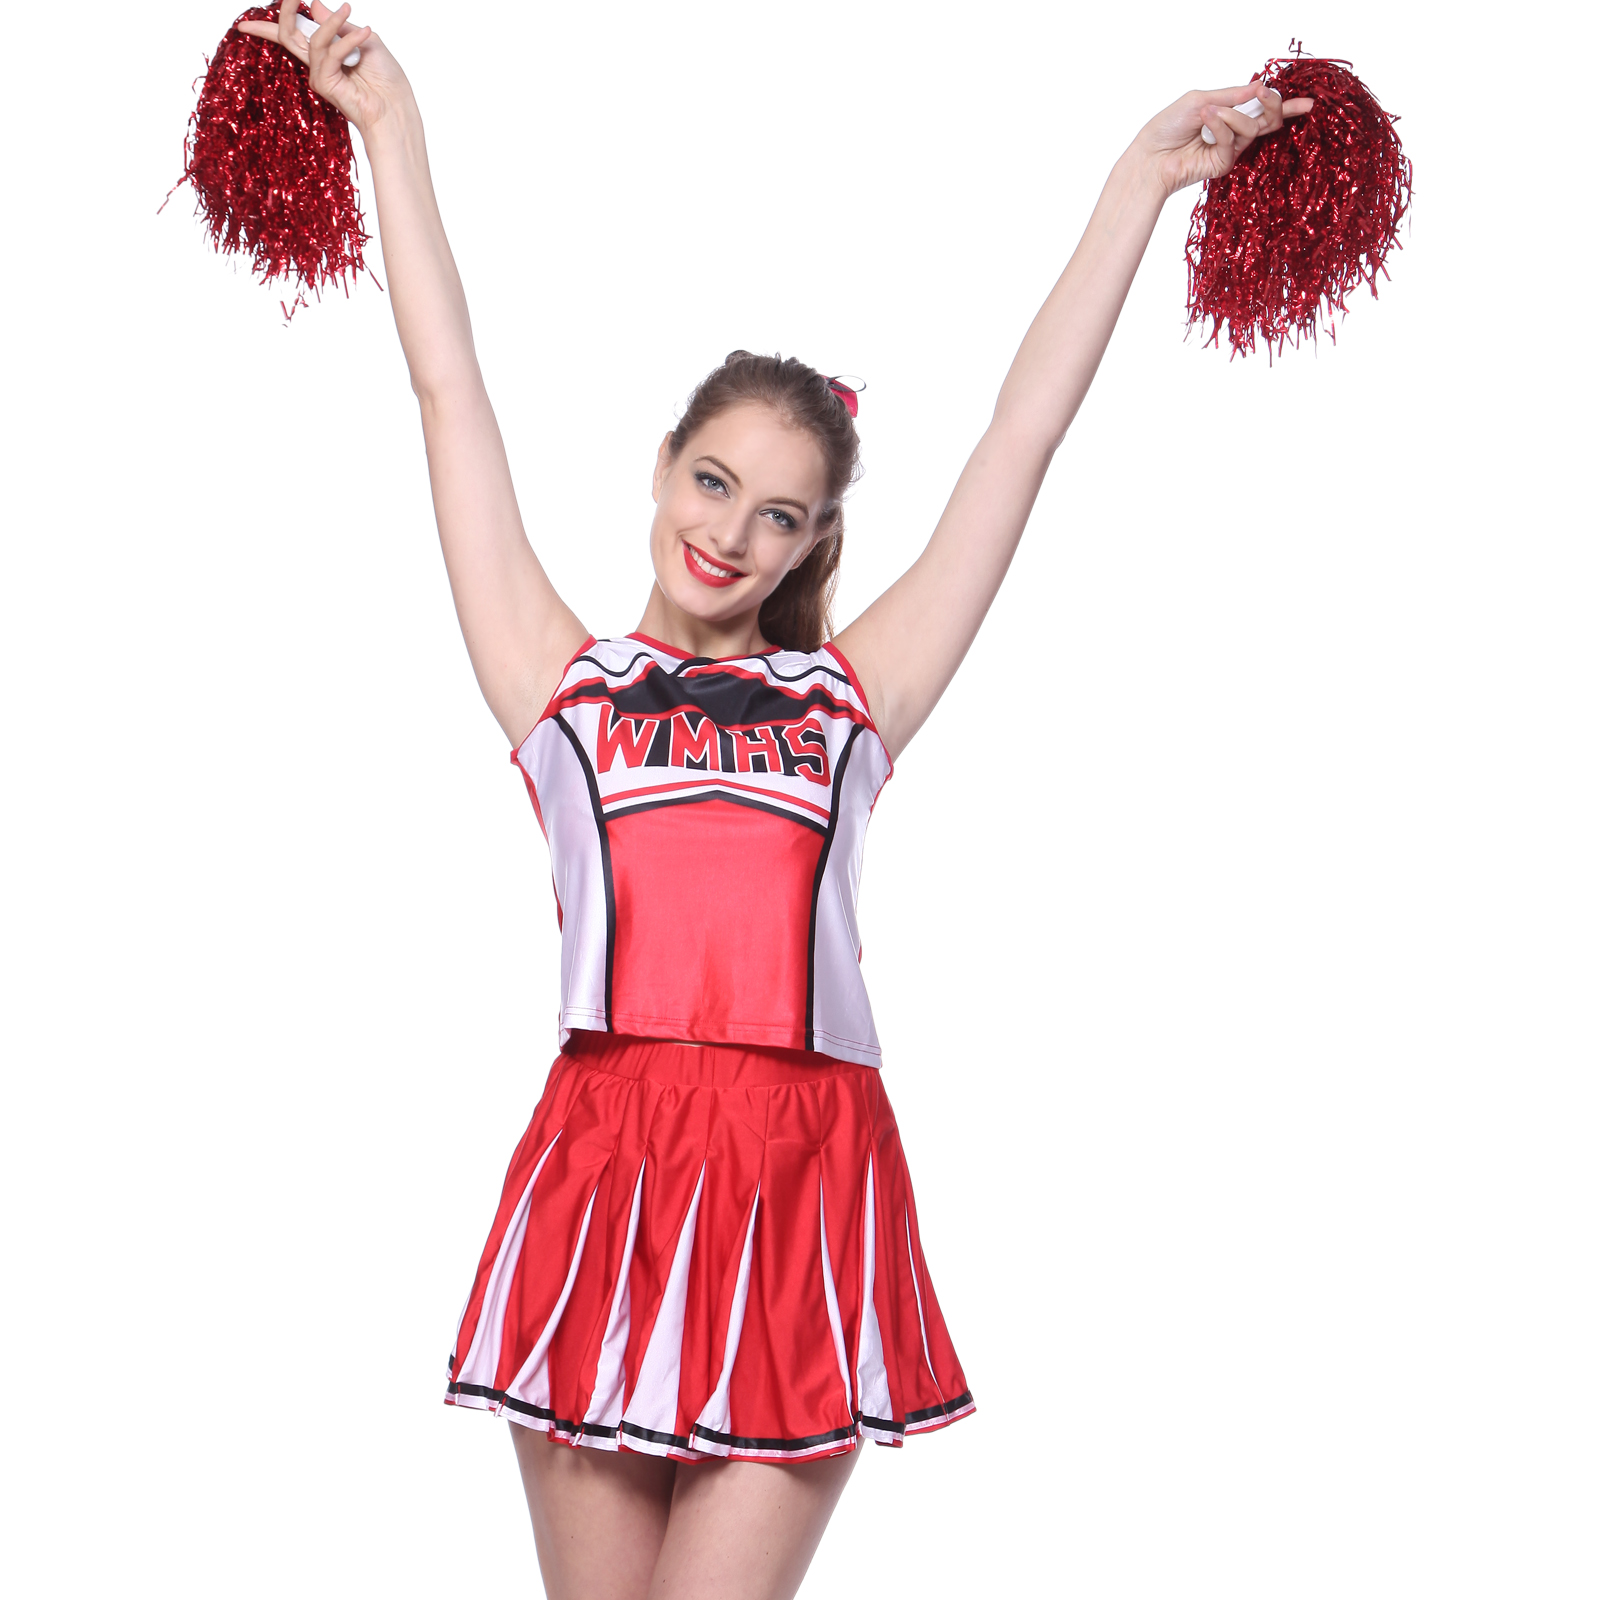 Picture 5 of 5  sc 1 st  eBay & Glee Club Style Cheerios Cheer Girl Costume Adult Cheerleader Outfit ...